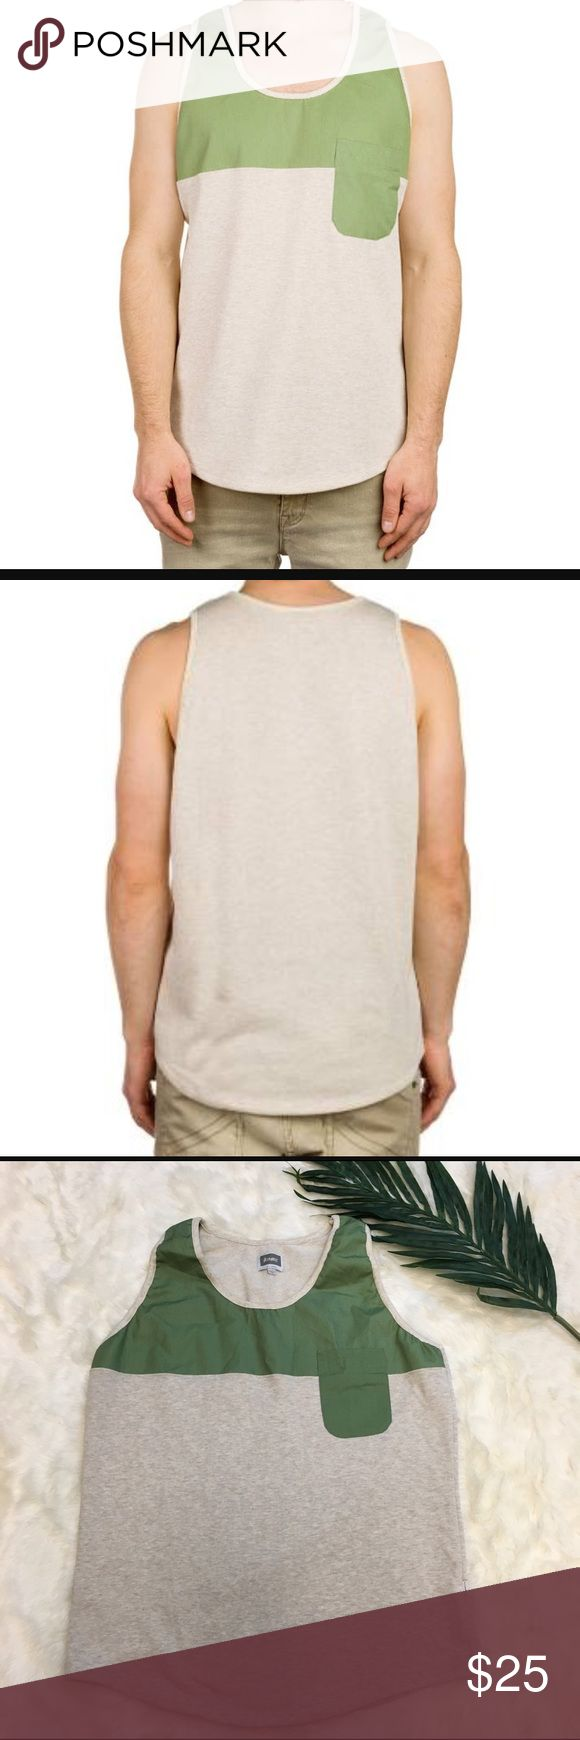 ☀️Altamont Oranda Sand Heather Tank Top EUC Altamont Oranda Sand Heather Men's Casual Tank Top. These are Sold out online. Altamont Shirts Tank Tops